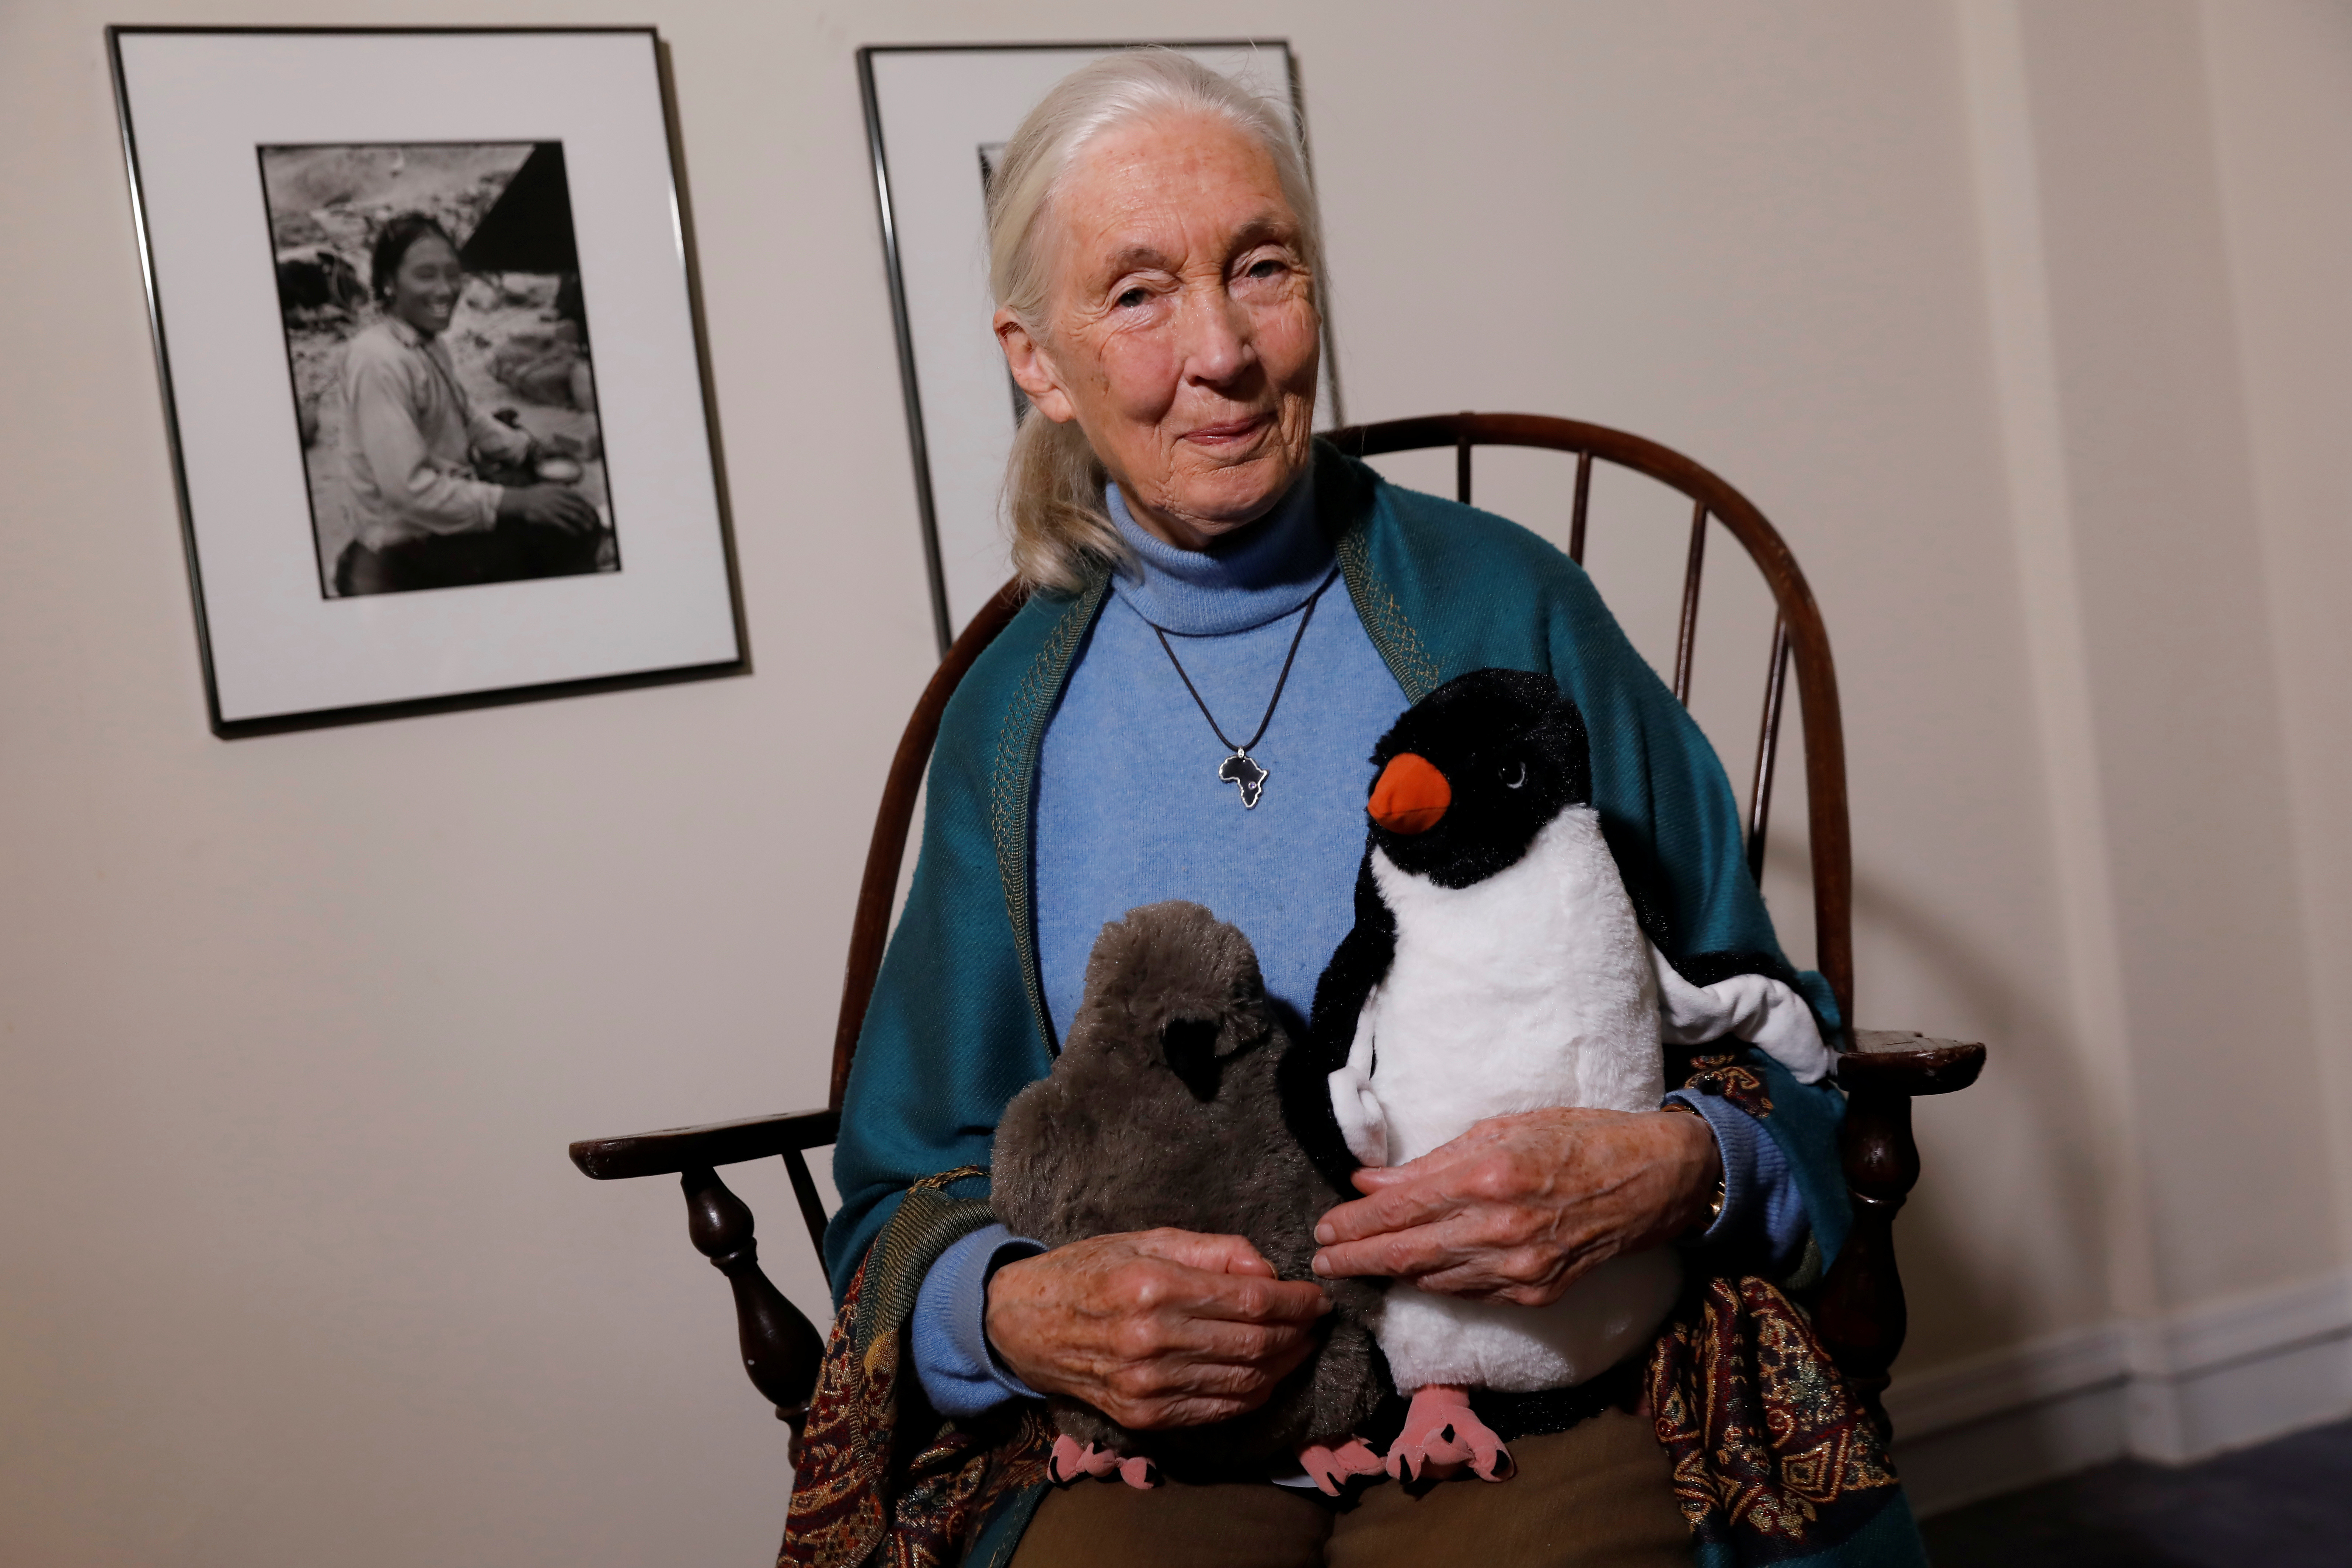 British primatologist, ethologist and anthropologist Jane Goodall poses for a portrait in New York, U.S., April 15, 2019. REUTERS/Shannon Stapleton - RC1F0150ED00